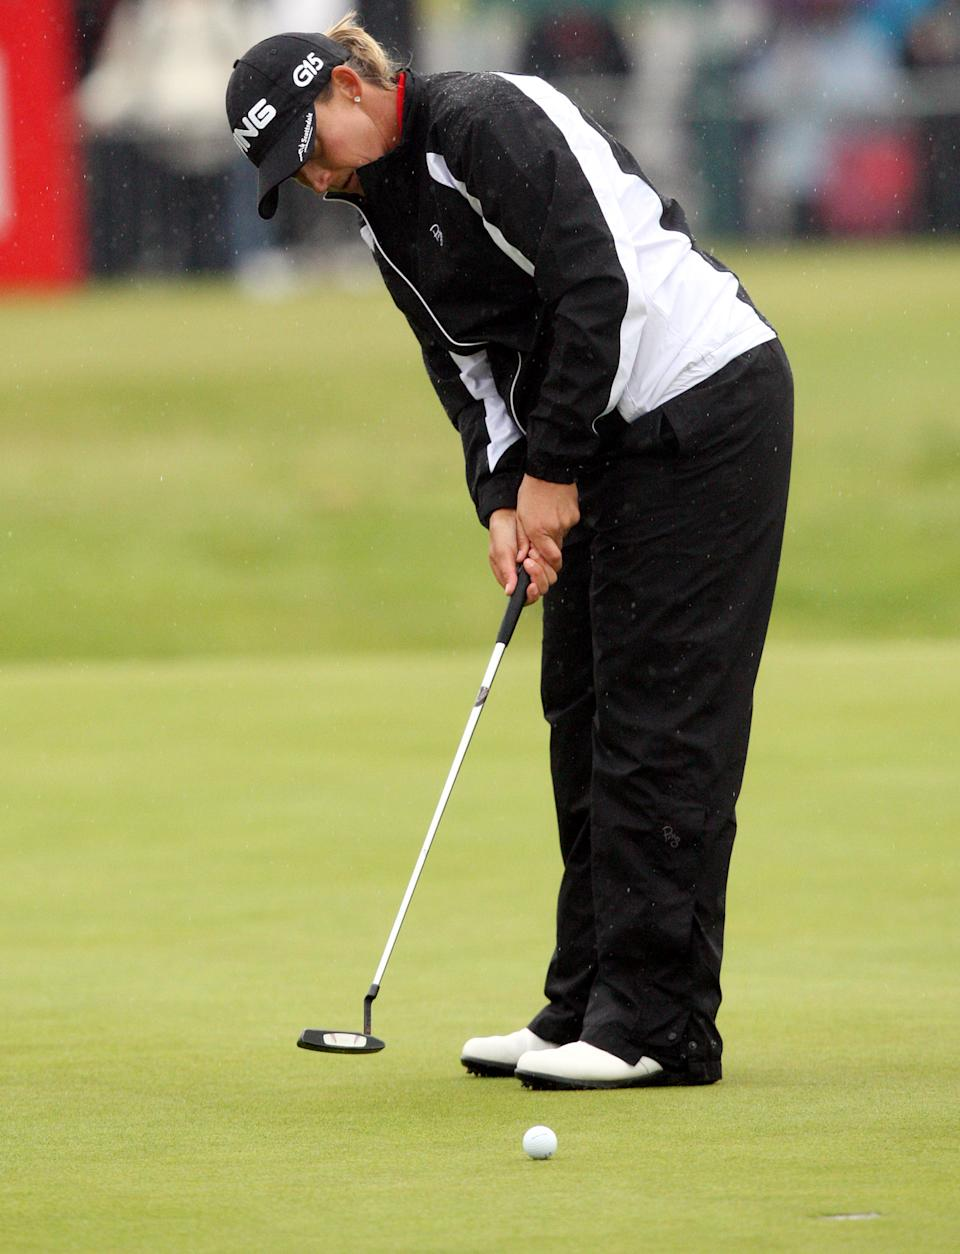 Angela Stanford of the USA, putts on the eighteenth, during the first round of the Women's British Open at Carnoustie Golf Club, Carnoustie, Scotland, Thursday July 28, 2011.(AP Photo/Scott Heppell)